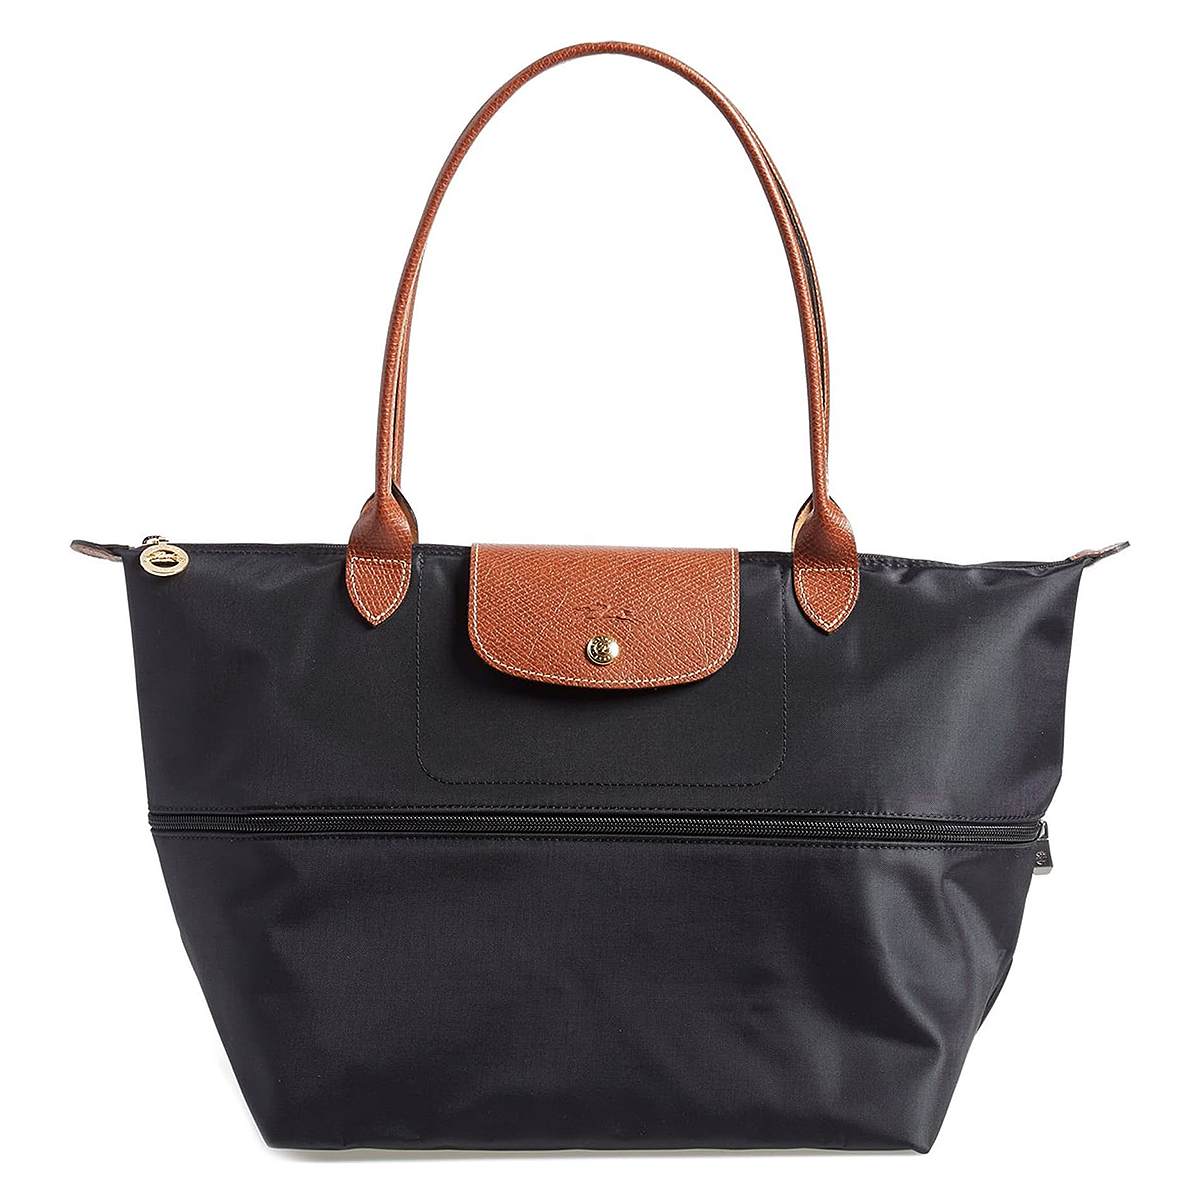 Longchamp Expandable Tote Is $75 Off in the Nordstrom Sale